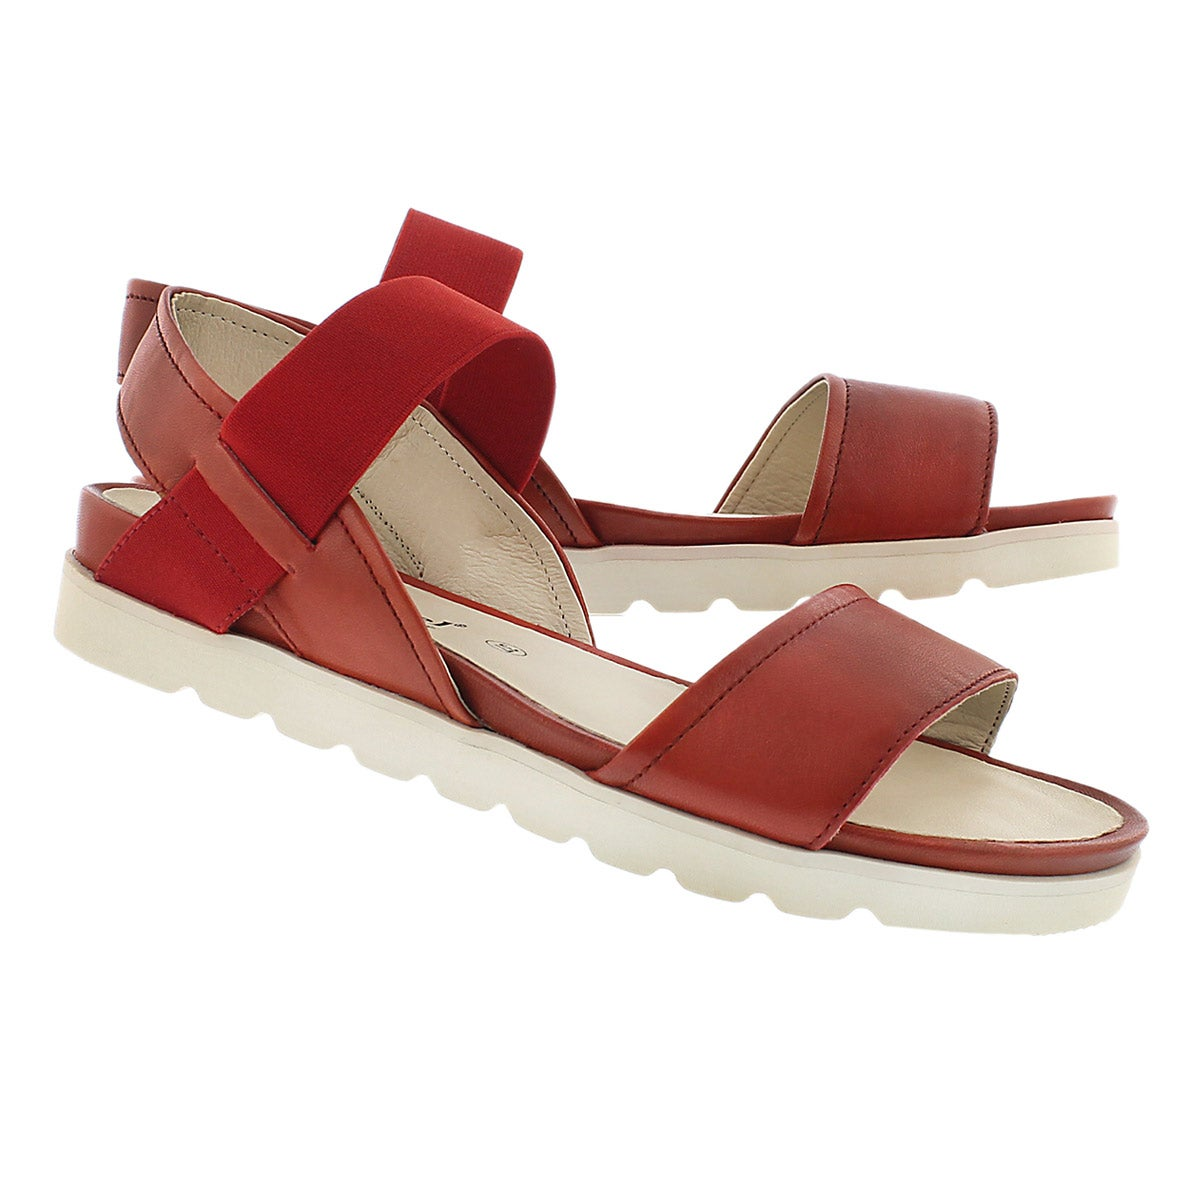 Lds Jolien 05 red casual sandal